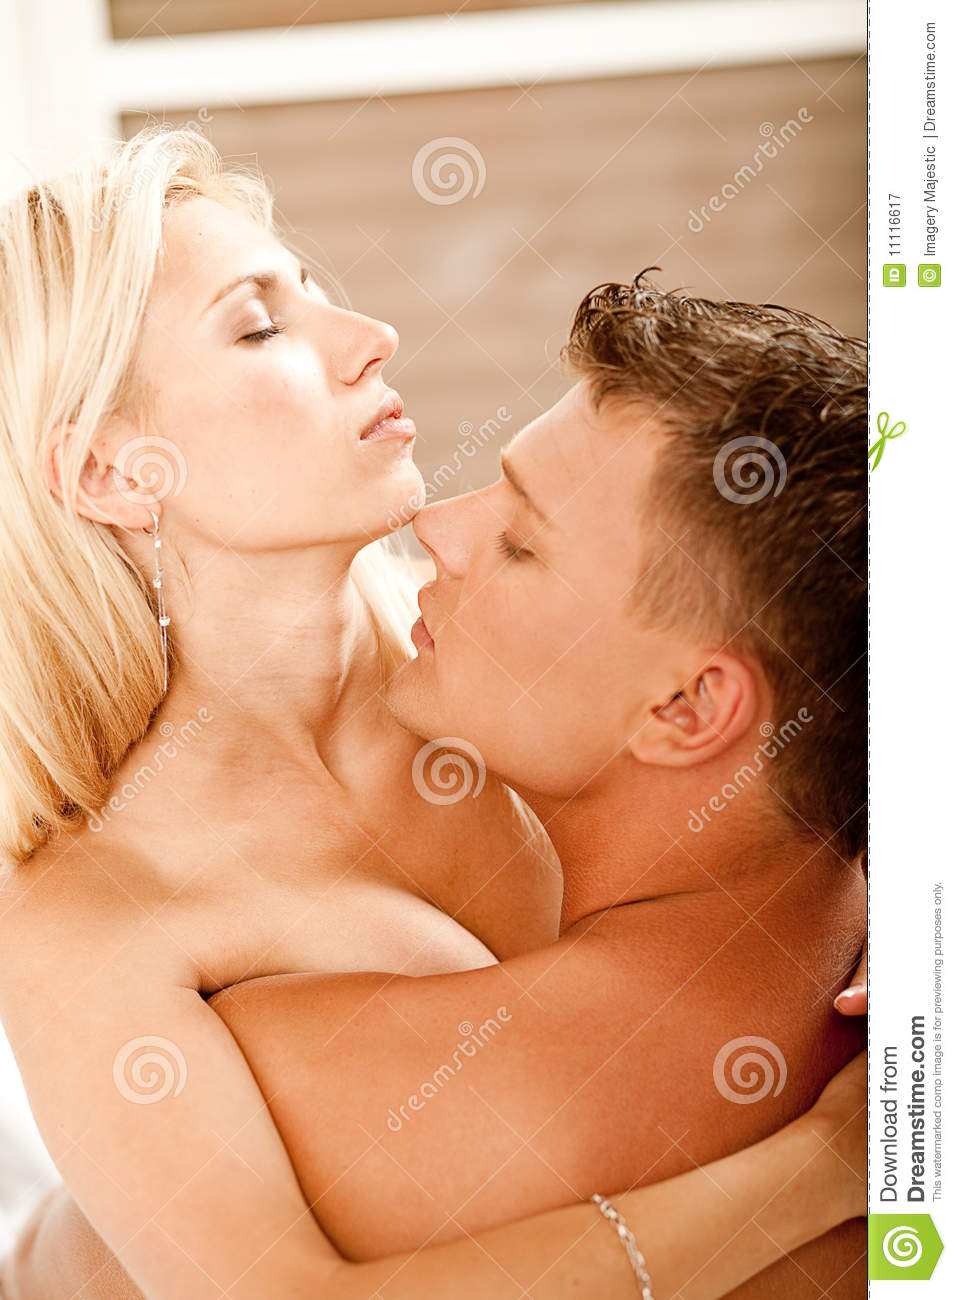 Sex act stock image Image of couple passionate handsome